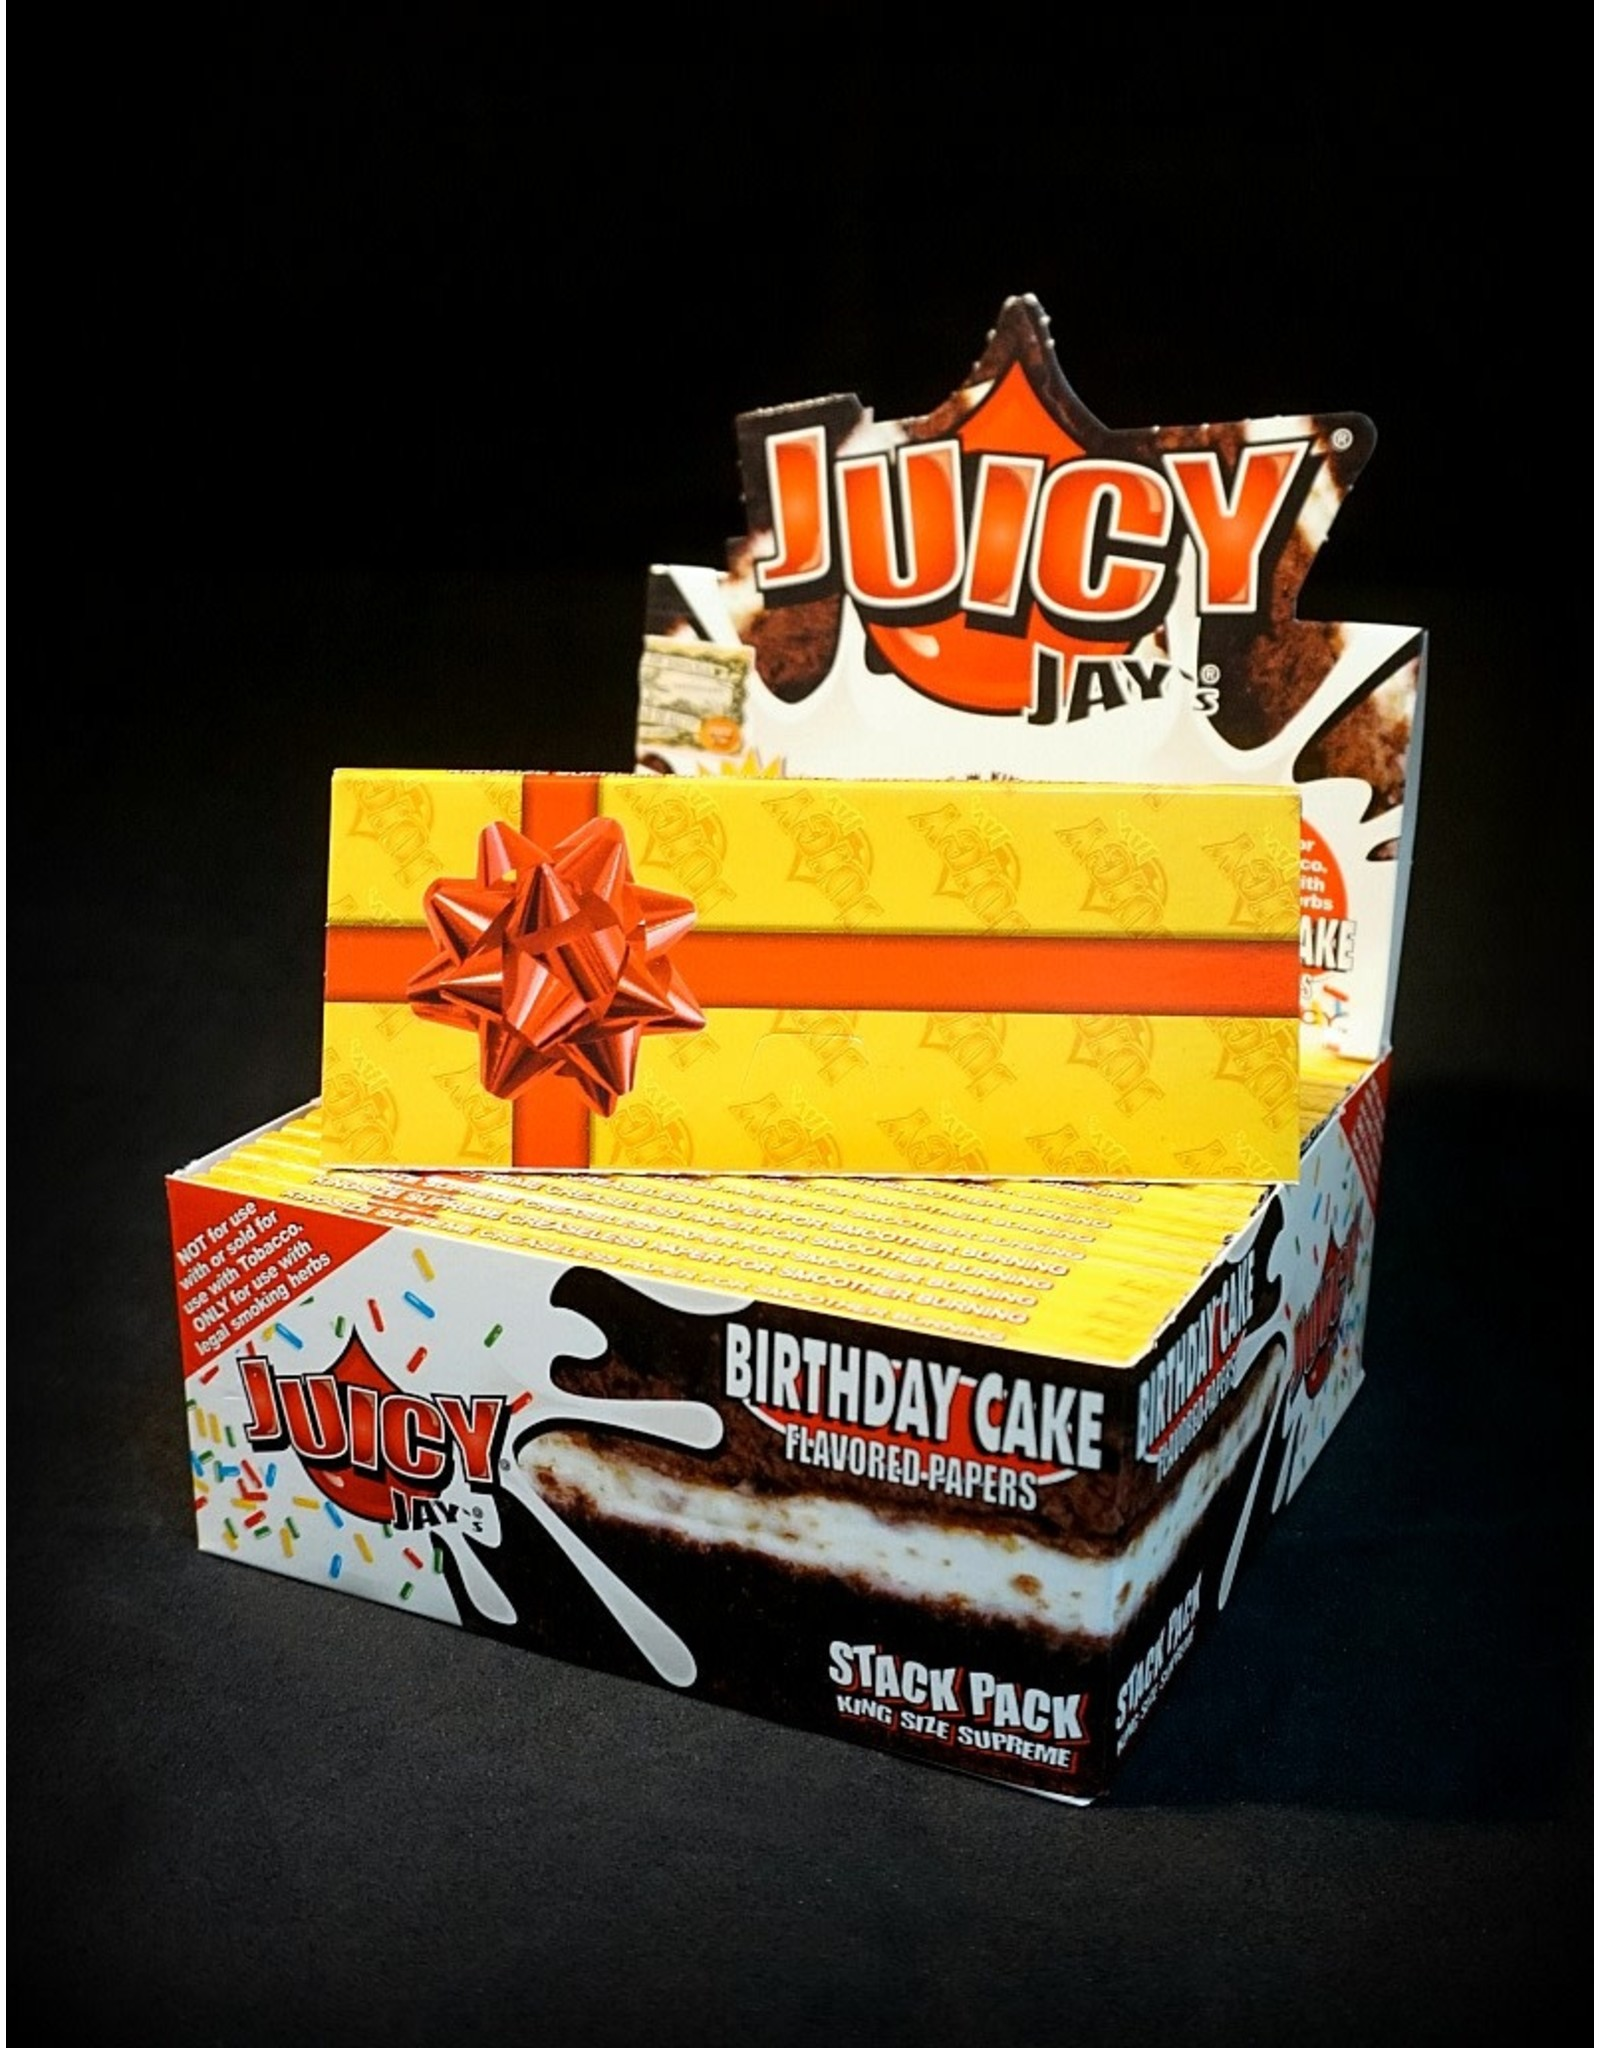 Juicy Jay's Juicy Jay's Birthday Cake KS